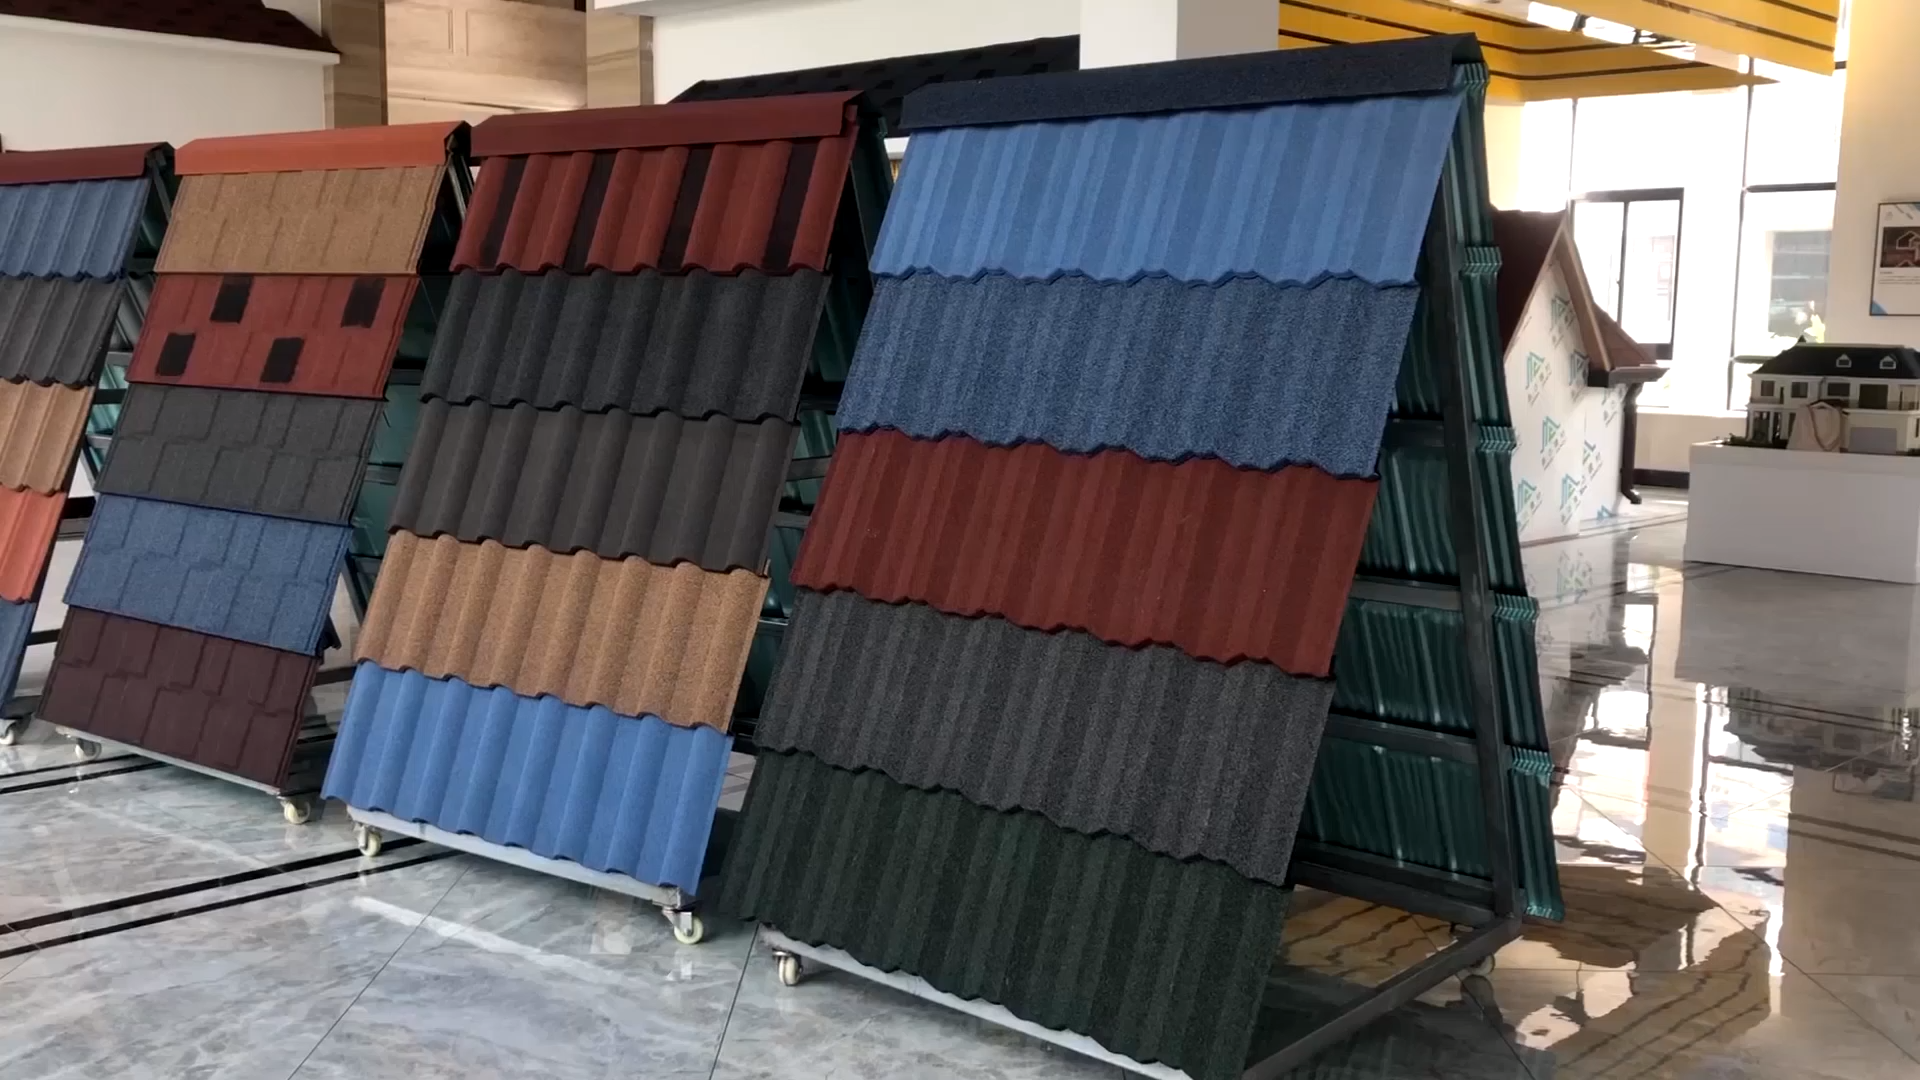 Popular construction materials roof tiles south africa sheet design metal roofing